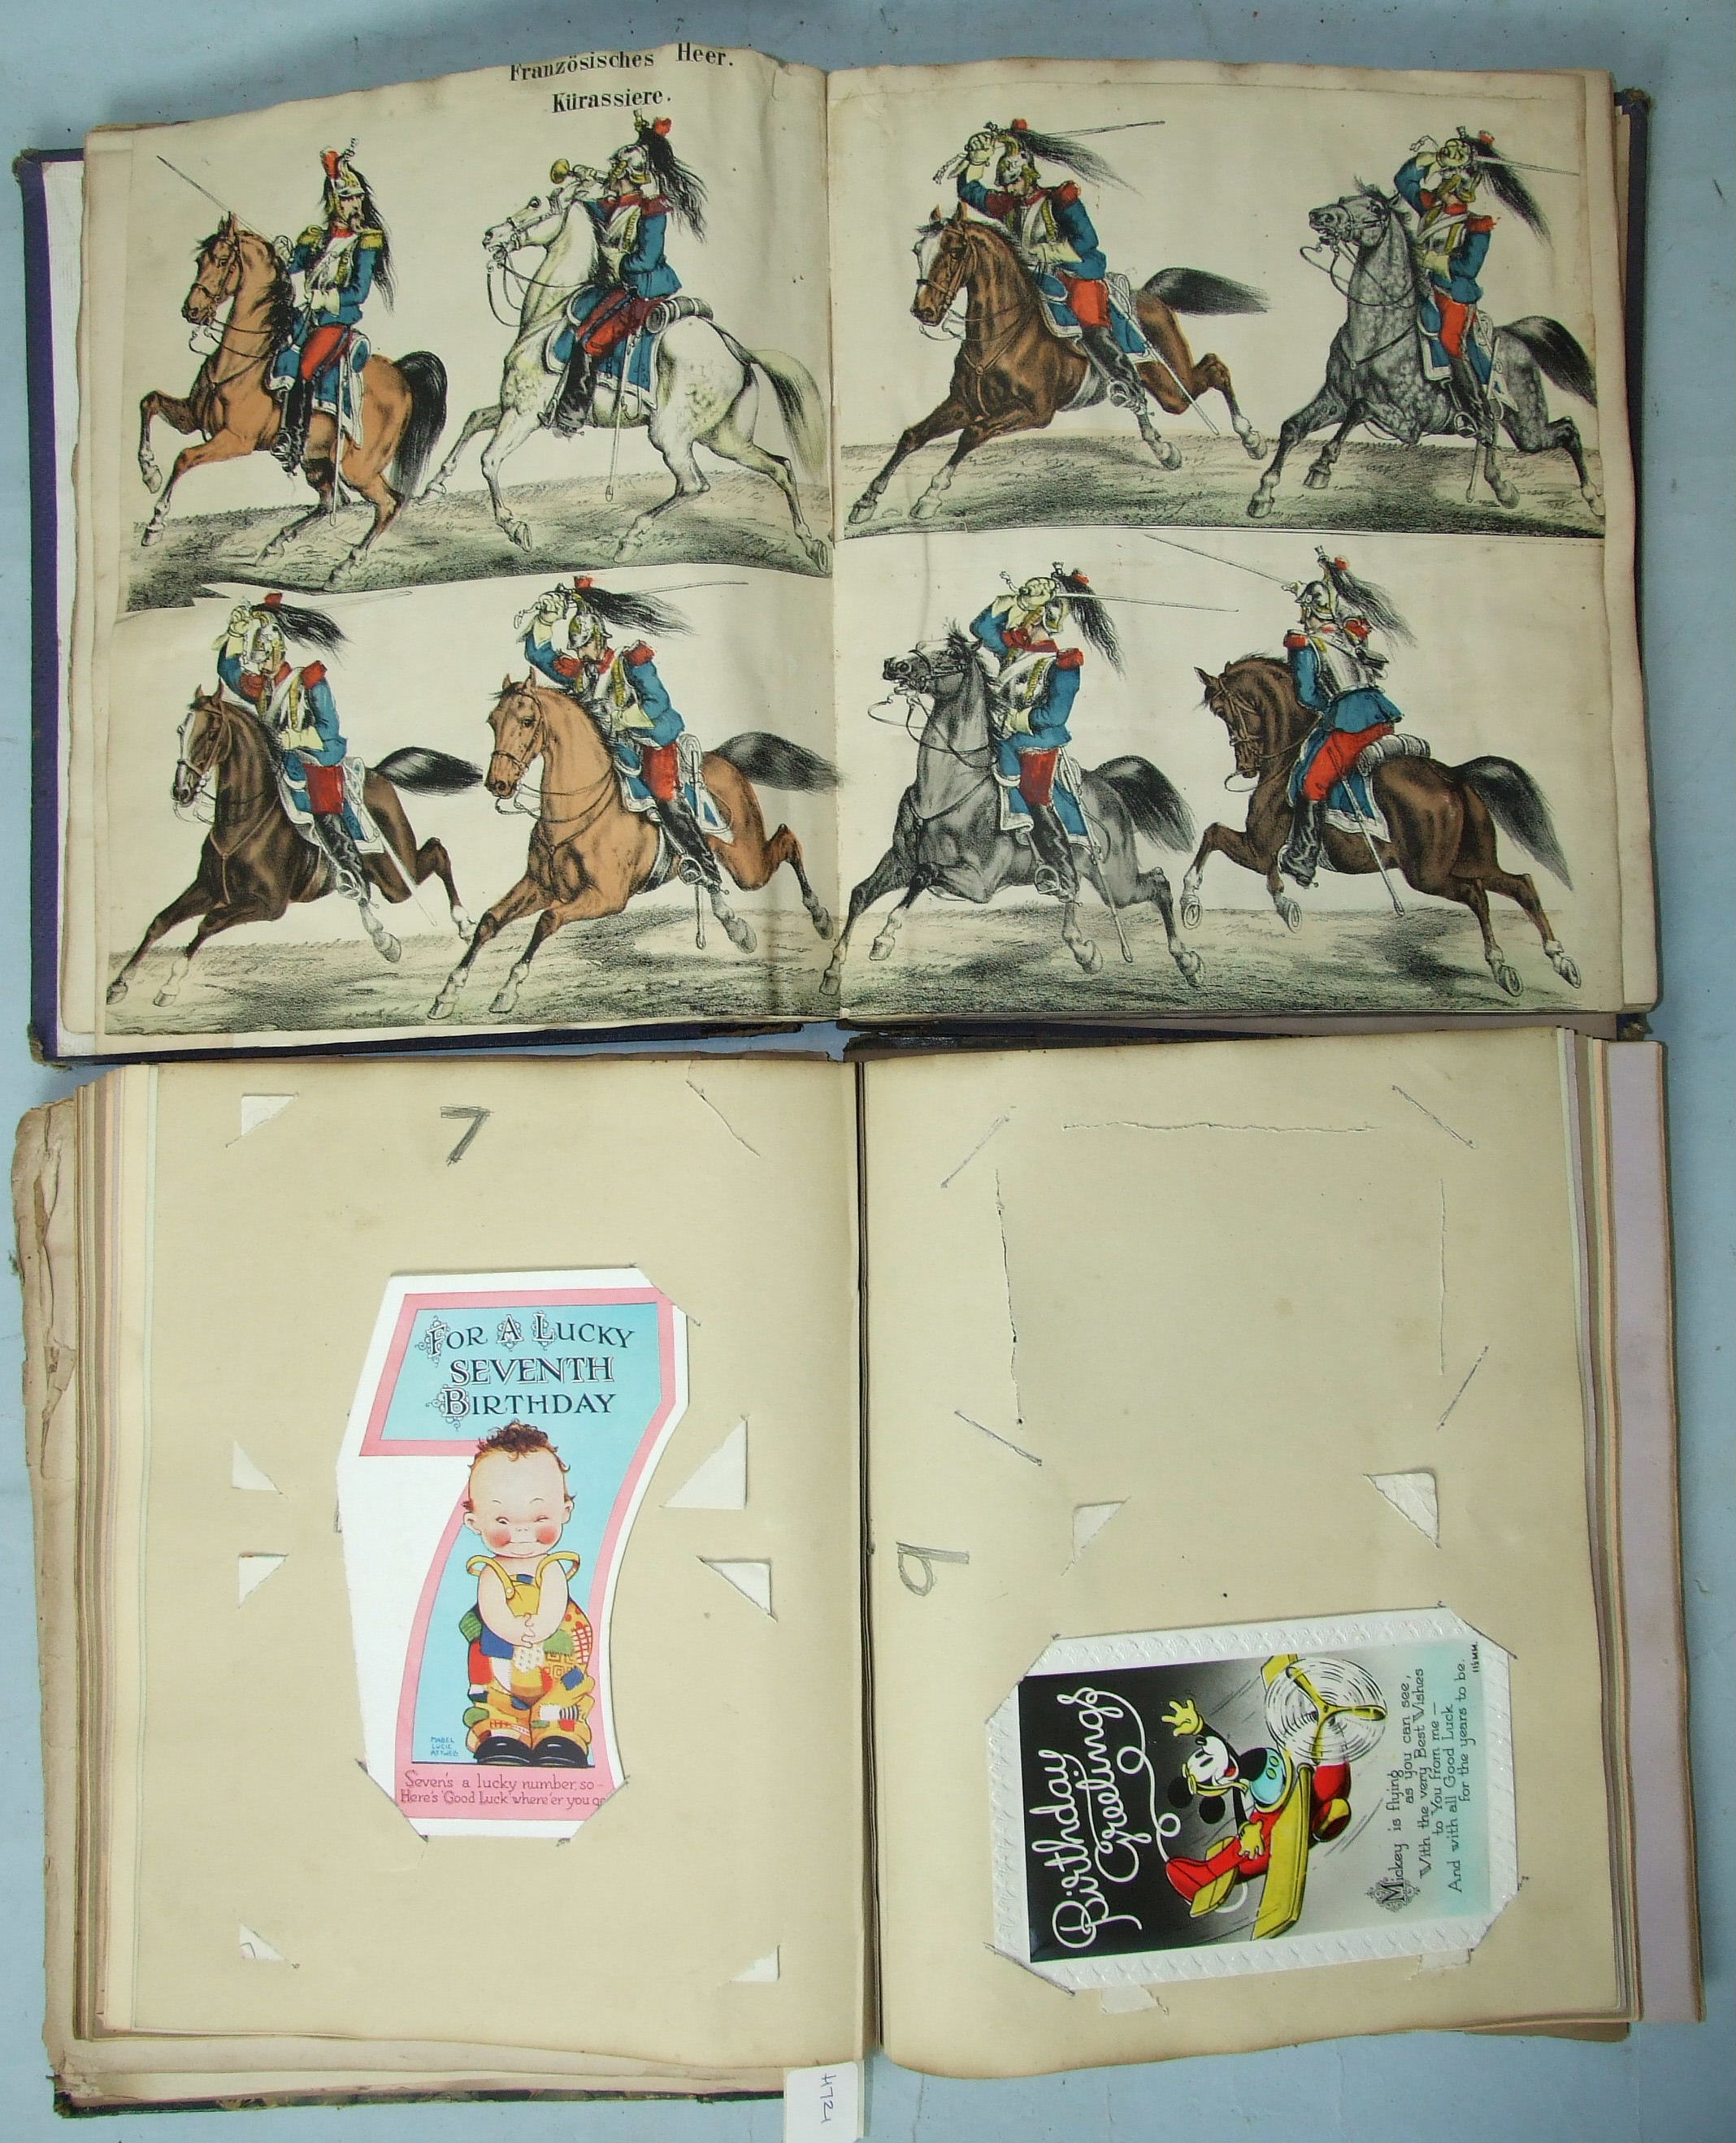 Lot 251 - Two Victorian scrap albums containing hand coloured lithographs of European artillery and cavalry,